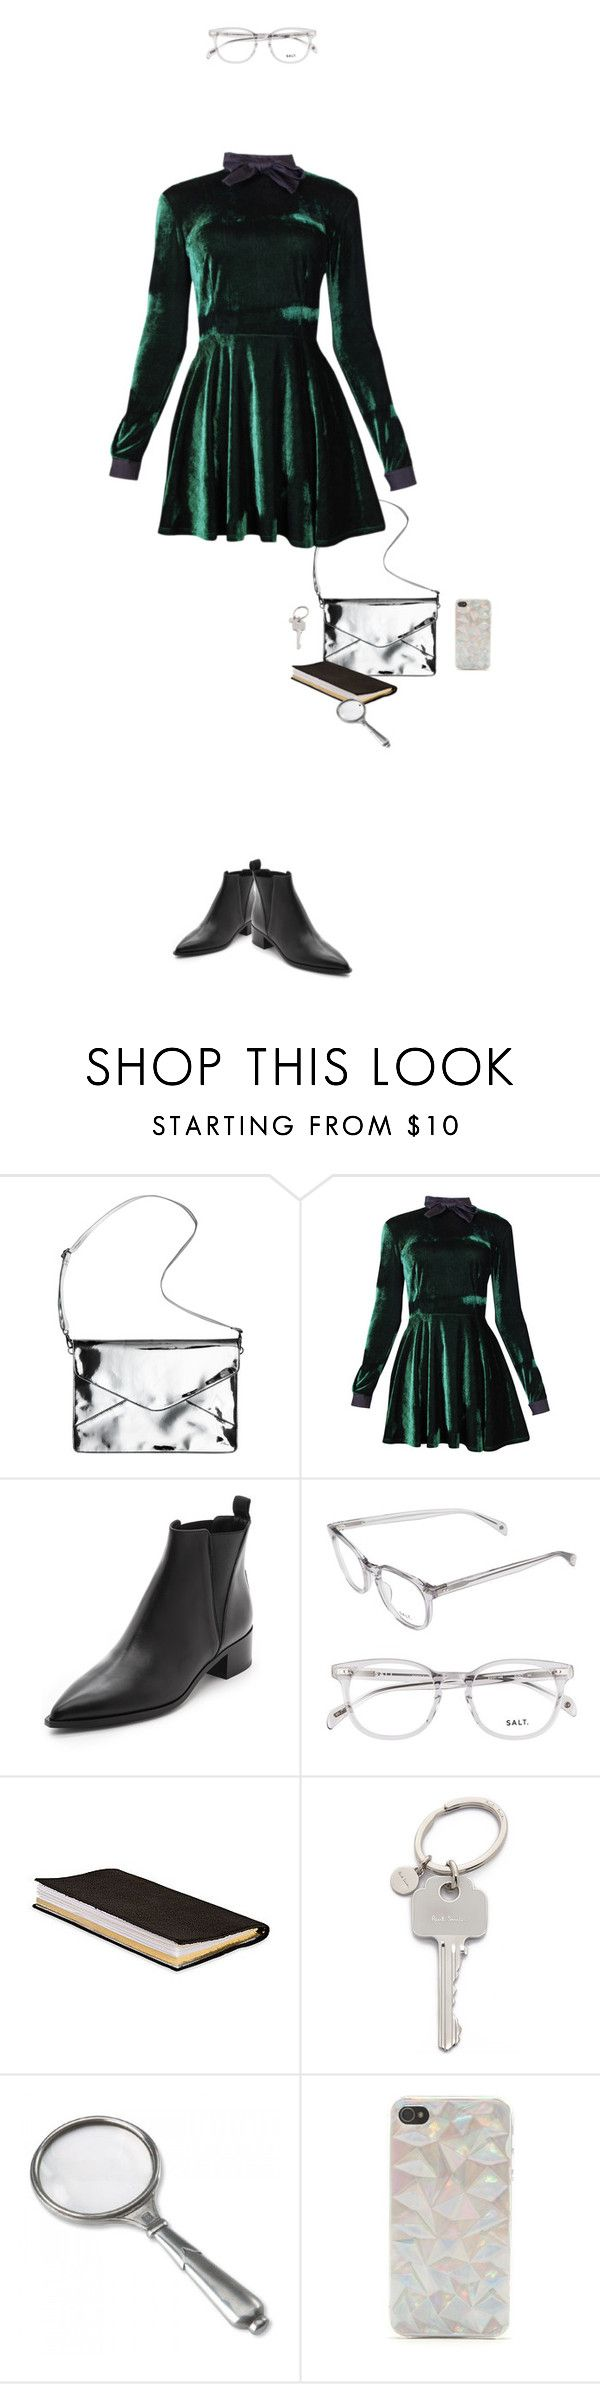 """cuore di tenebra"" by mrs-z ❤ liked on Polyvore featuring Monki, Valfré, Acne Studios, Zara, Paul Smith, Match, With Love From CA, velvet, glasses and ankleboots"